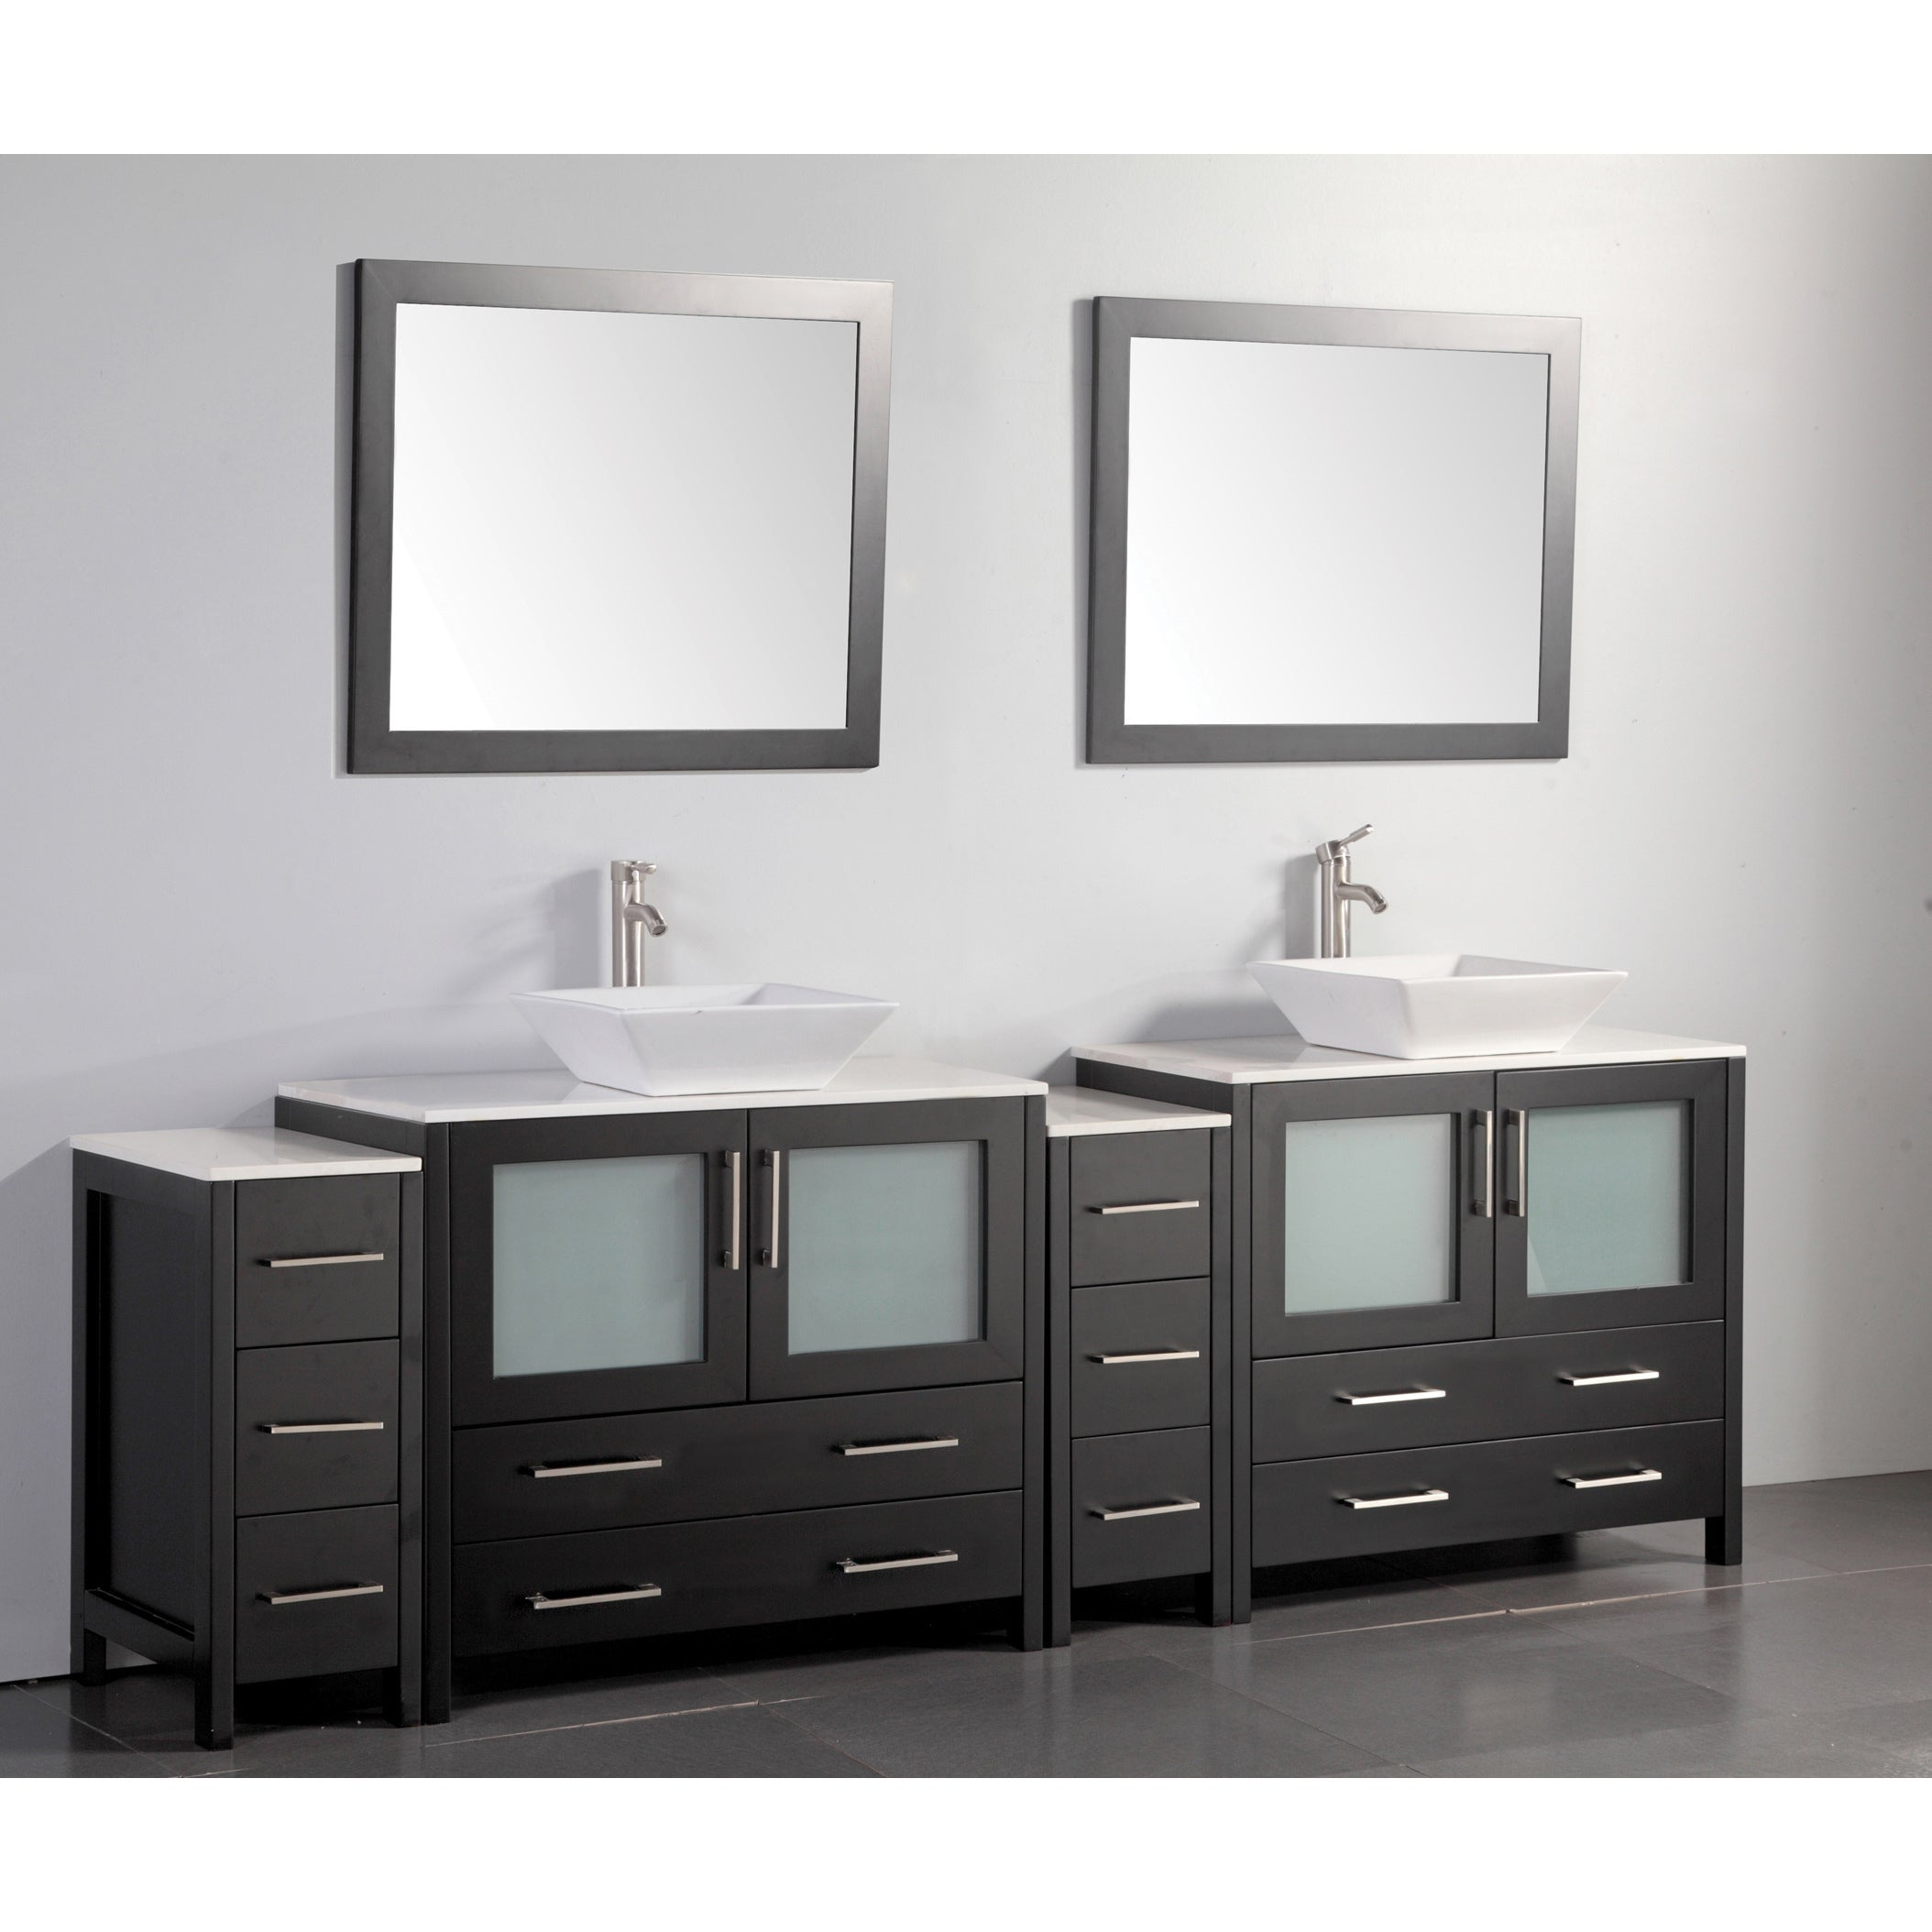 bathroom drawer dsc toga sink products double in white drawers vanity of inch set taiya